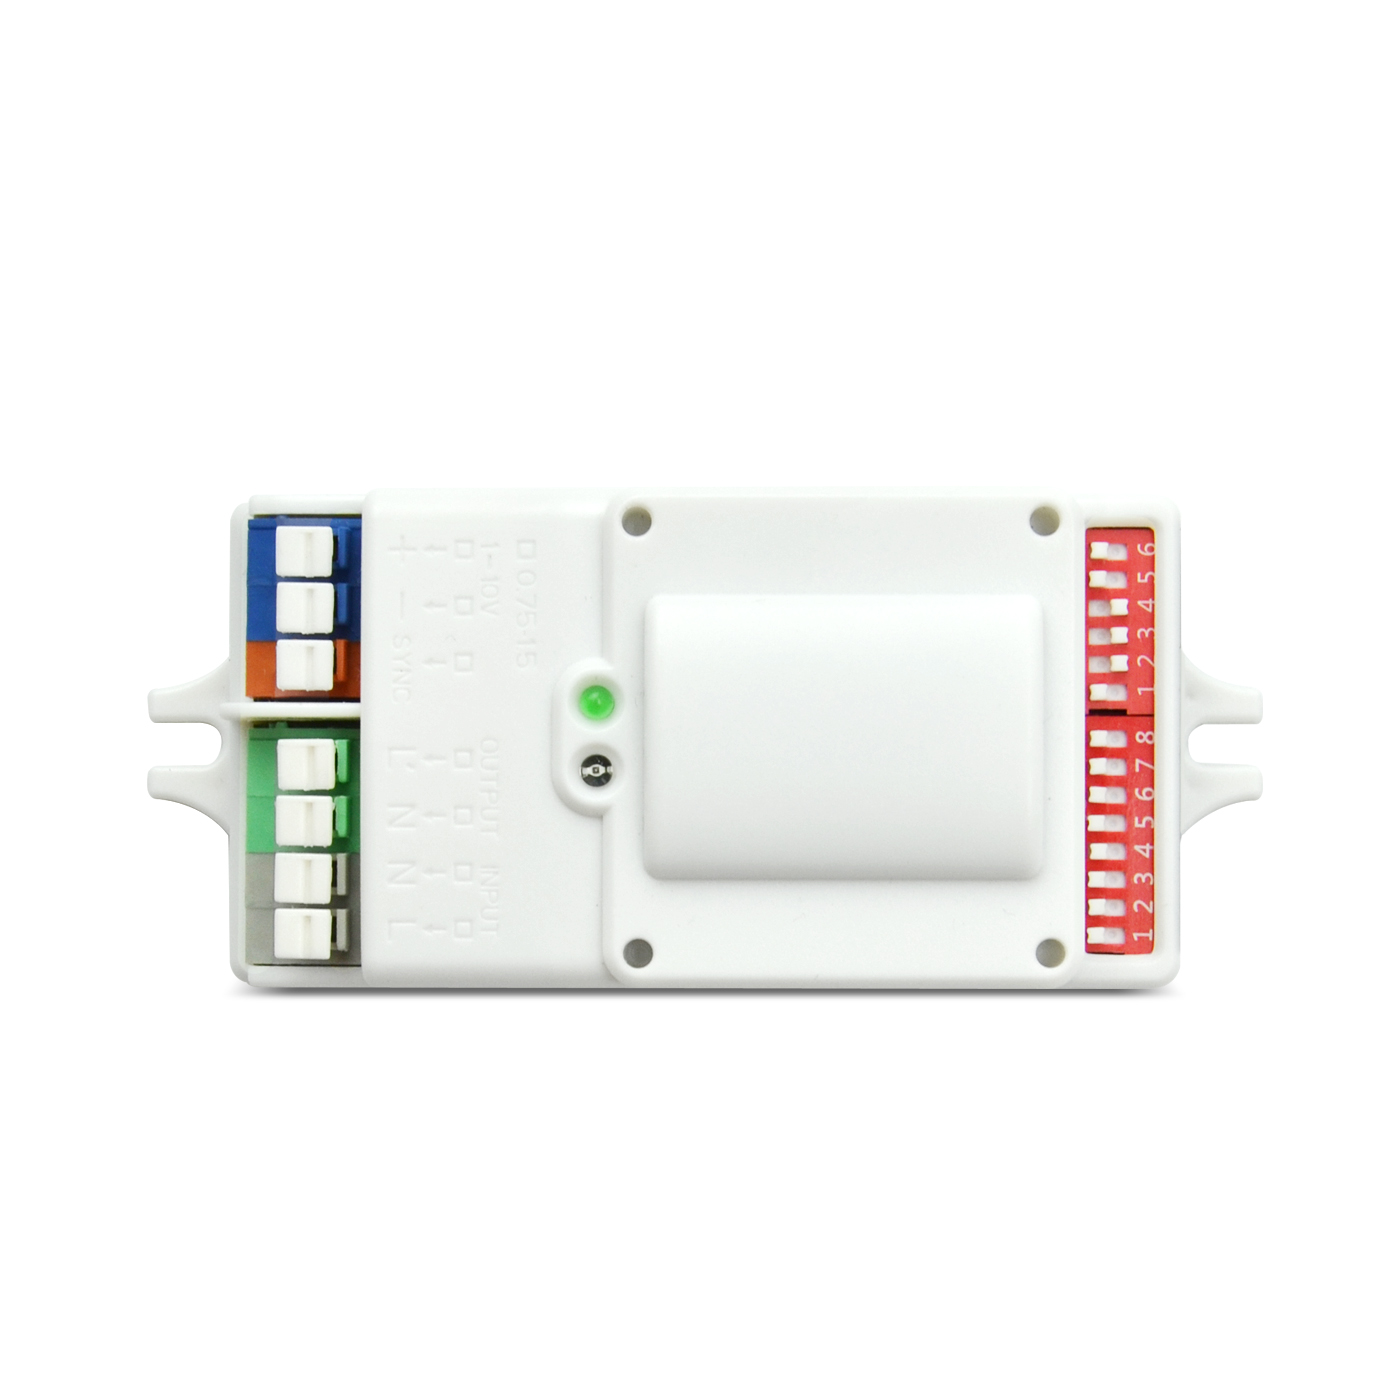 [out of stock]120-277VAC 1-10V Dimming Motion Sensor